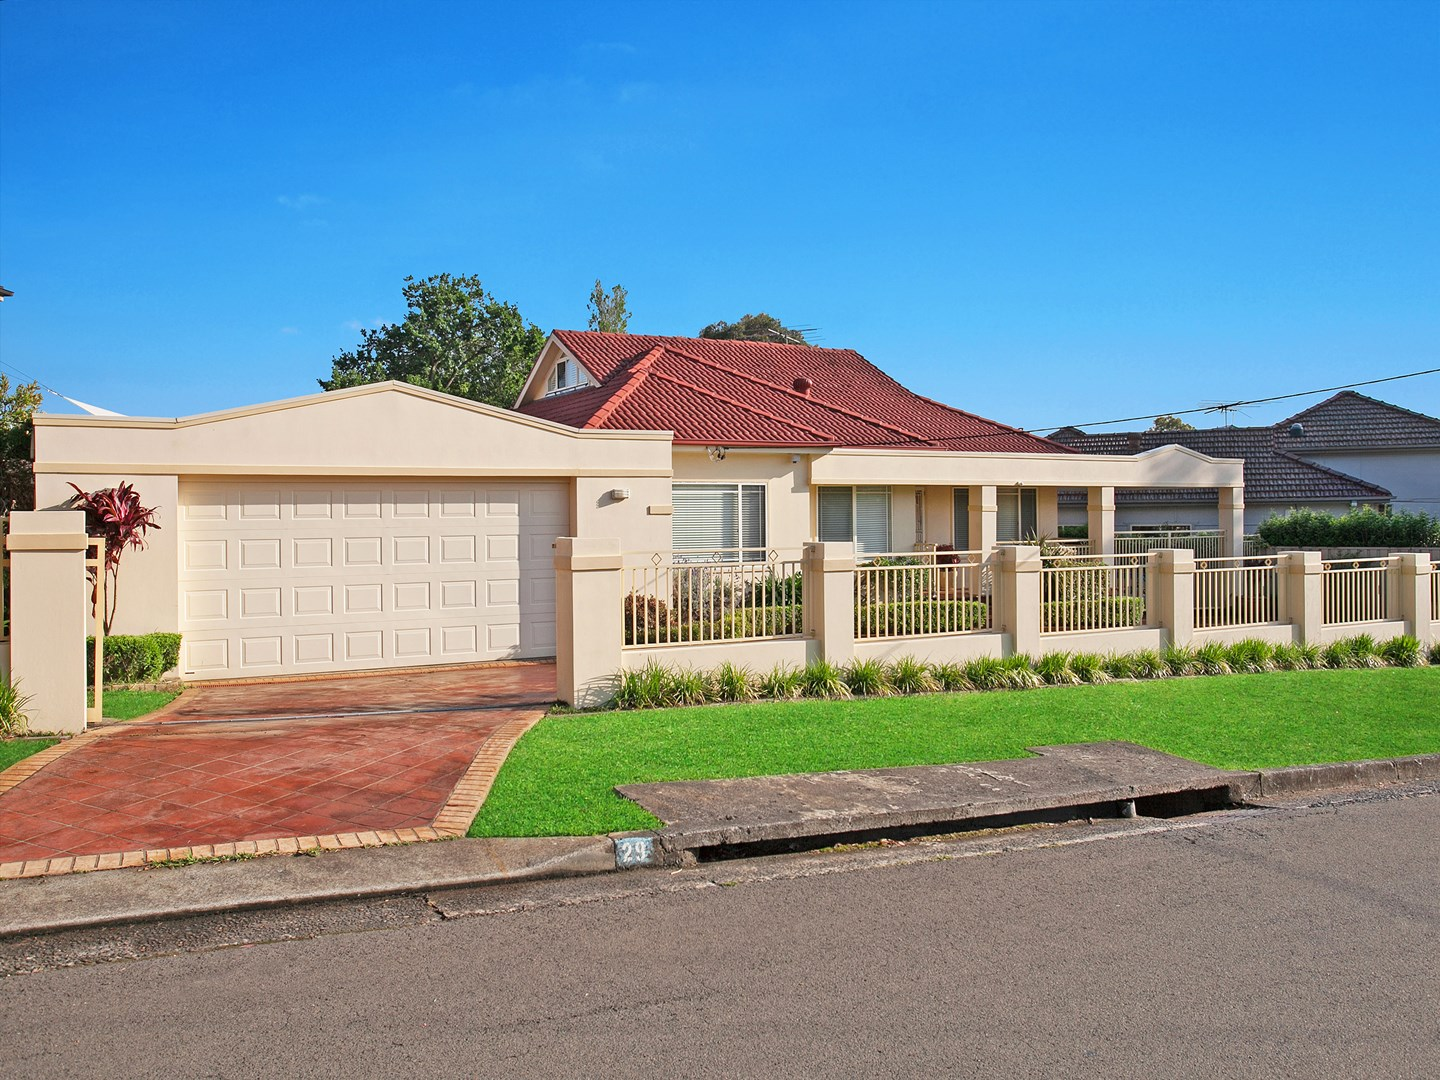 Picture of 29 Holly Street, Caringbah South